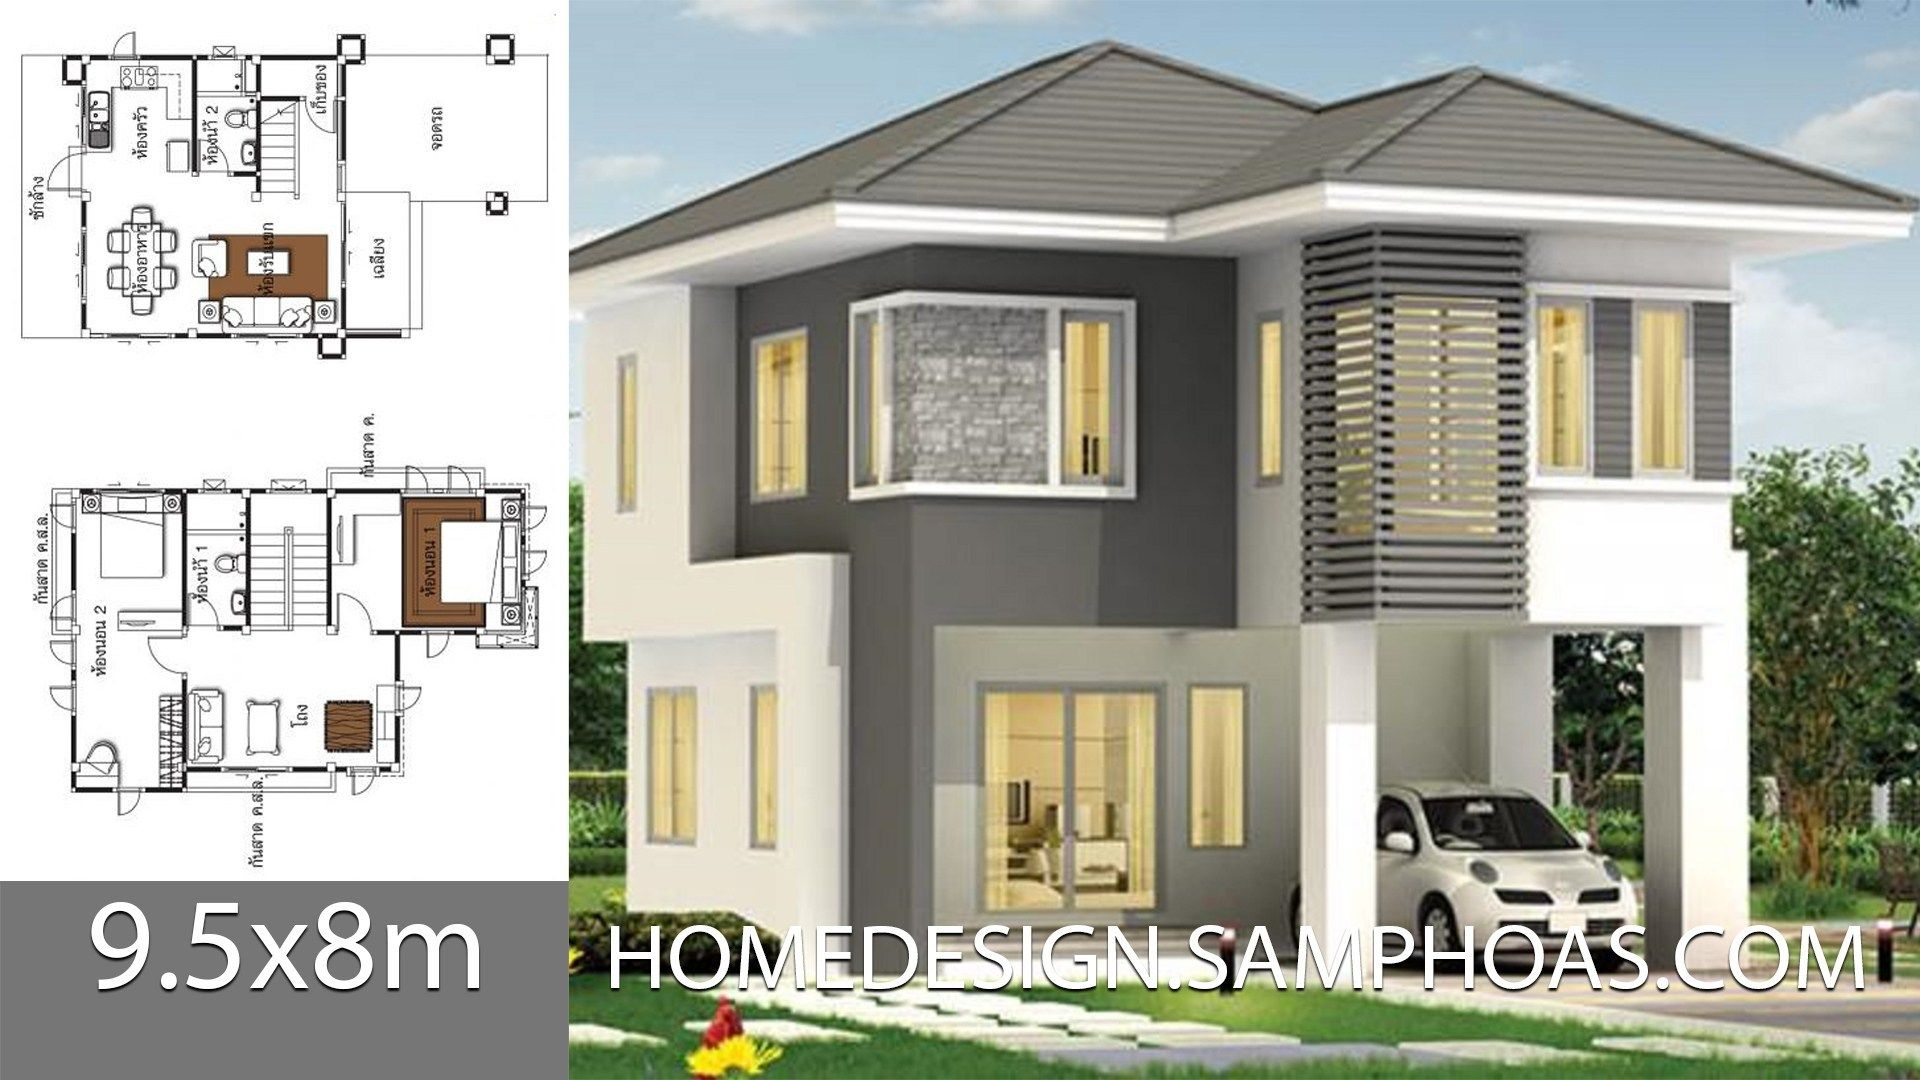 Home Design Idea 9 5x8m With 2 Bedrooms House Design Architect House Home Design Plan